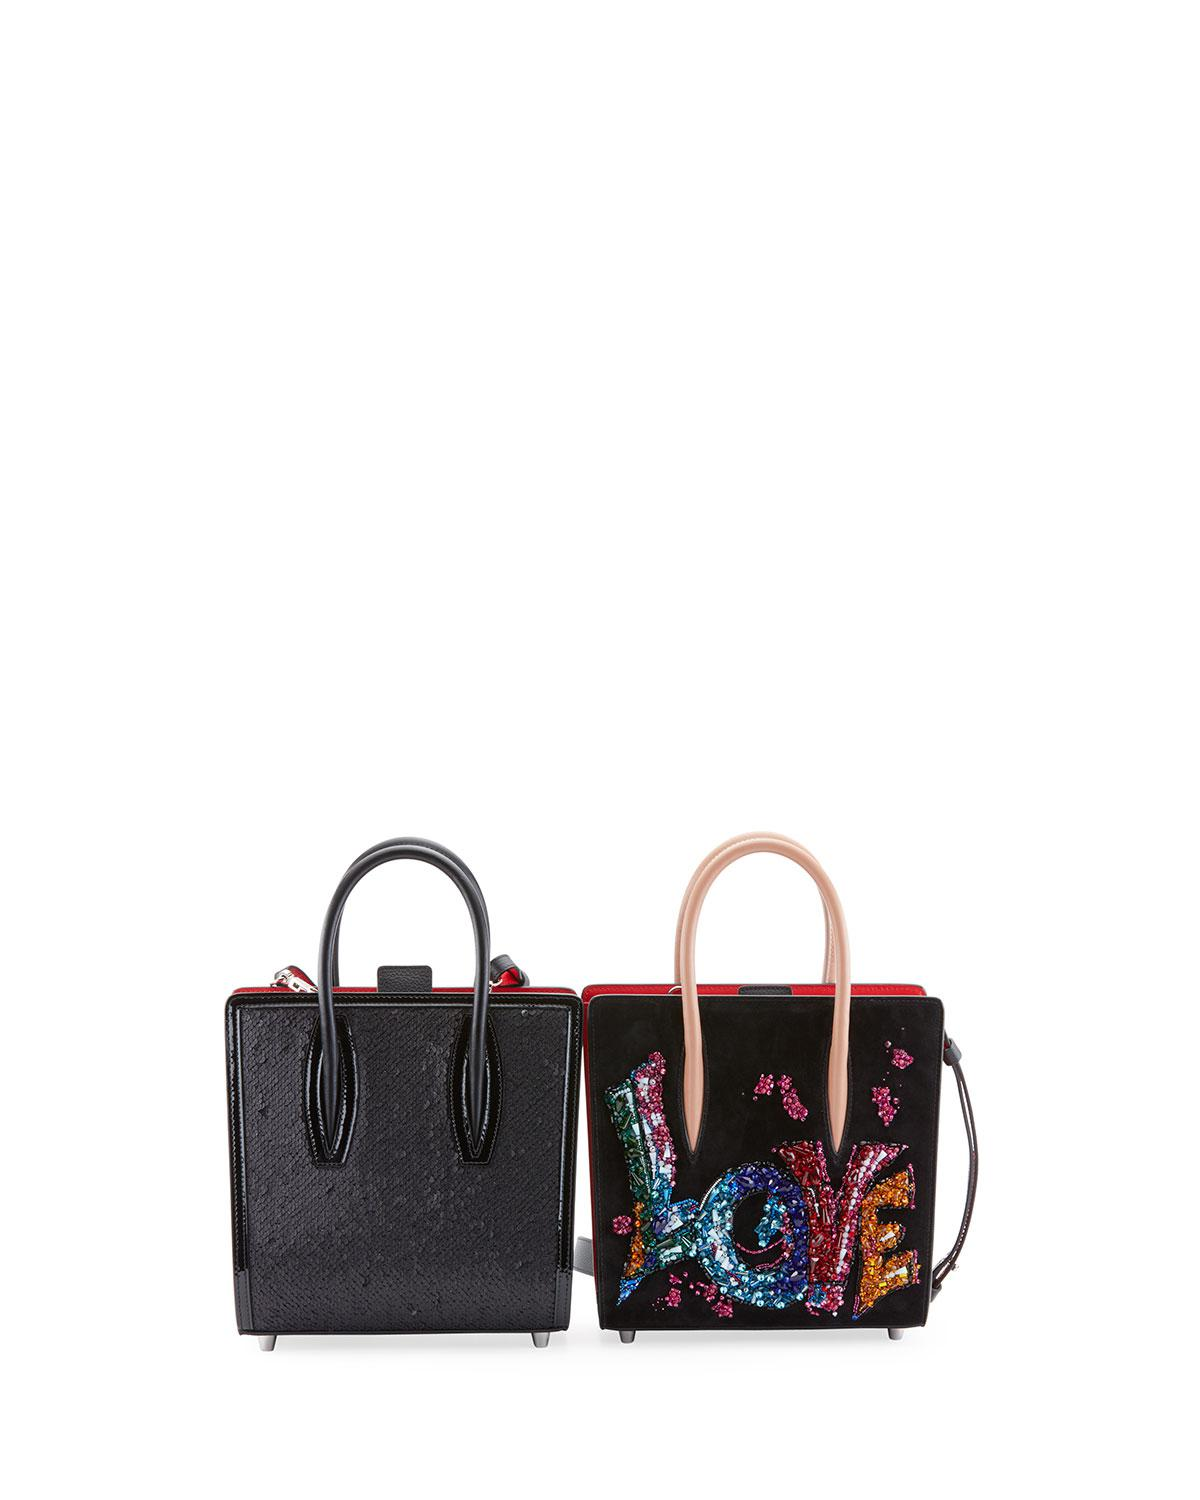 7beb764dcf0 Lyst - Christian Louboutin Paloma Small Embroidered Tote Bag in Black